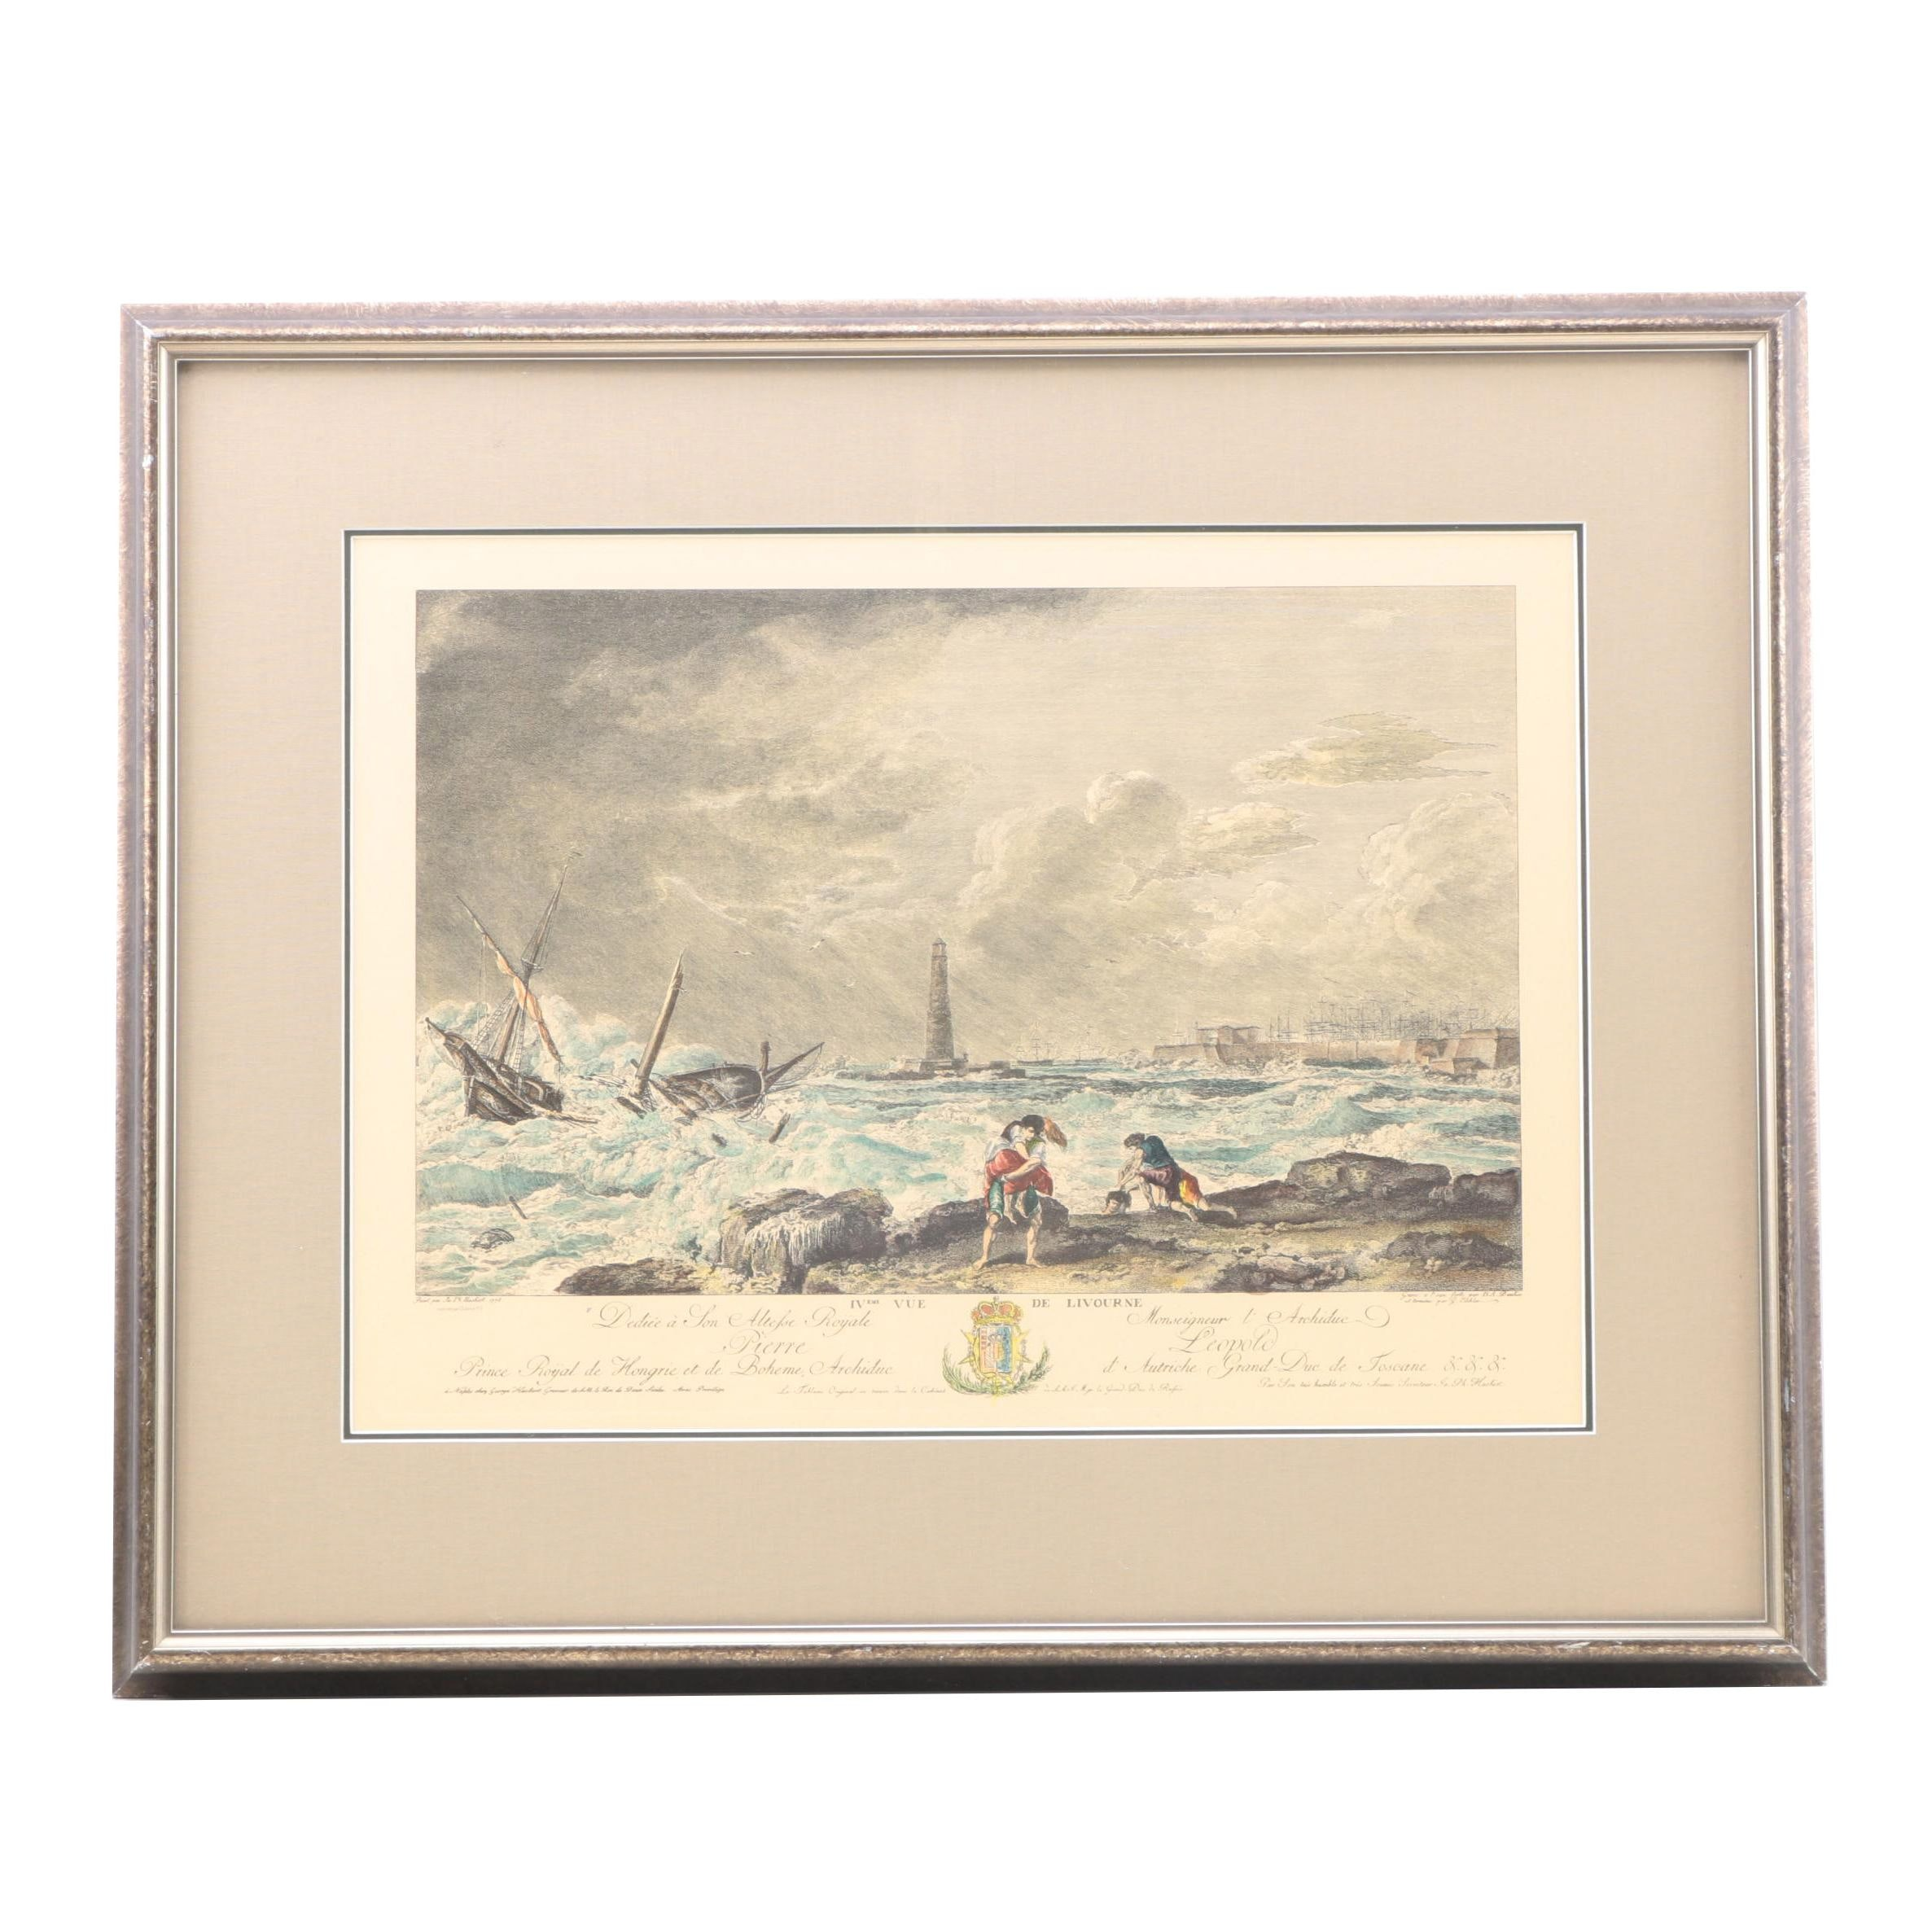 Hand-colored Lithograph after an Etching of Shipwreck